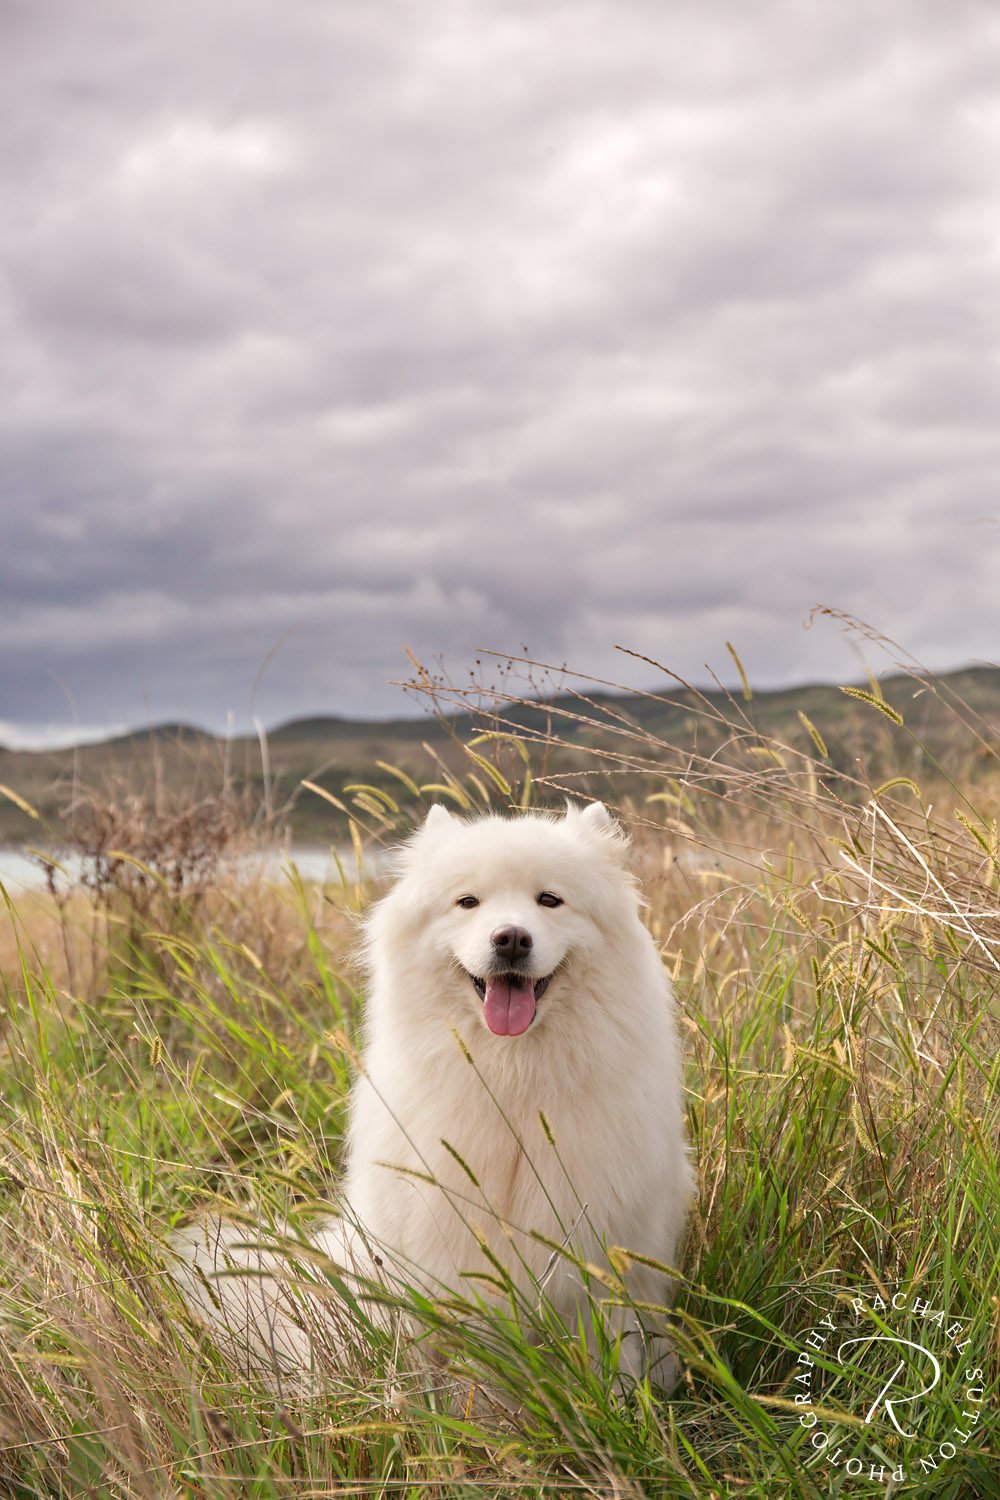 animal photography, white fluffy dog sitting in grass with thunder clouds behind